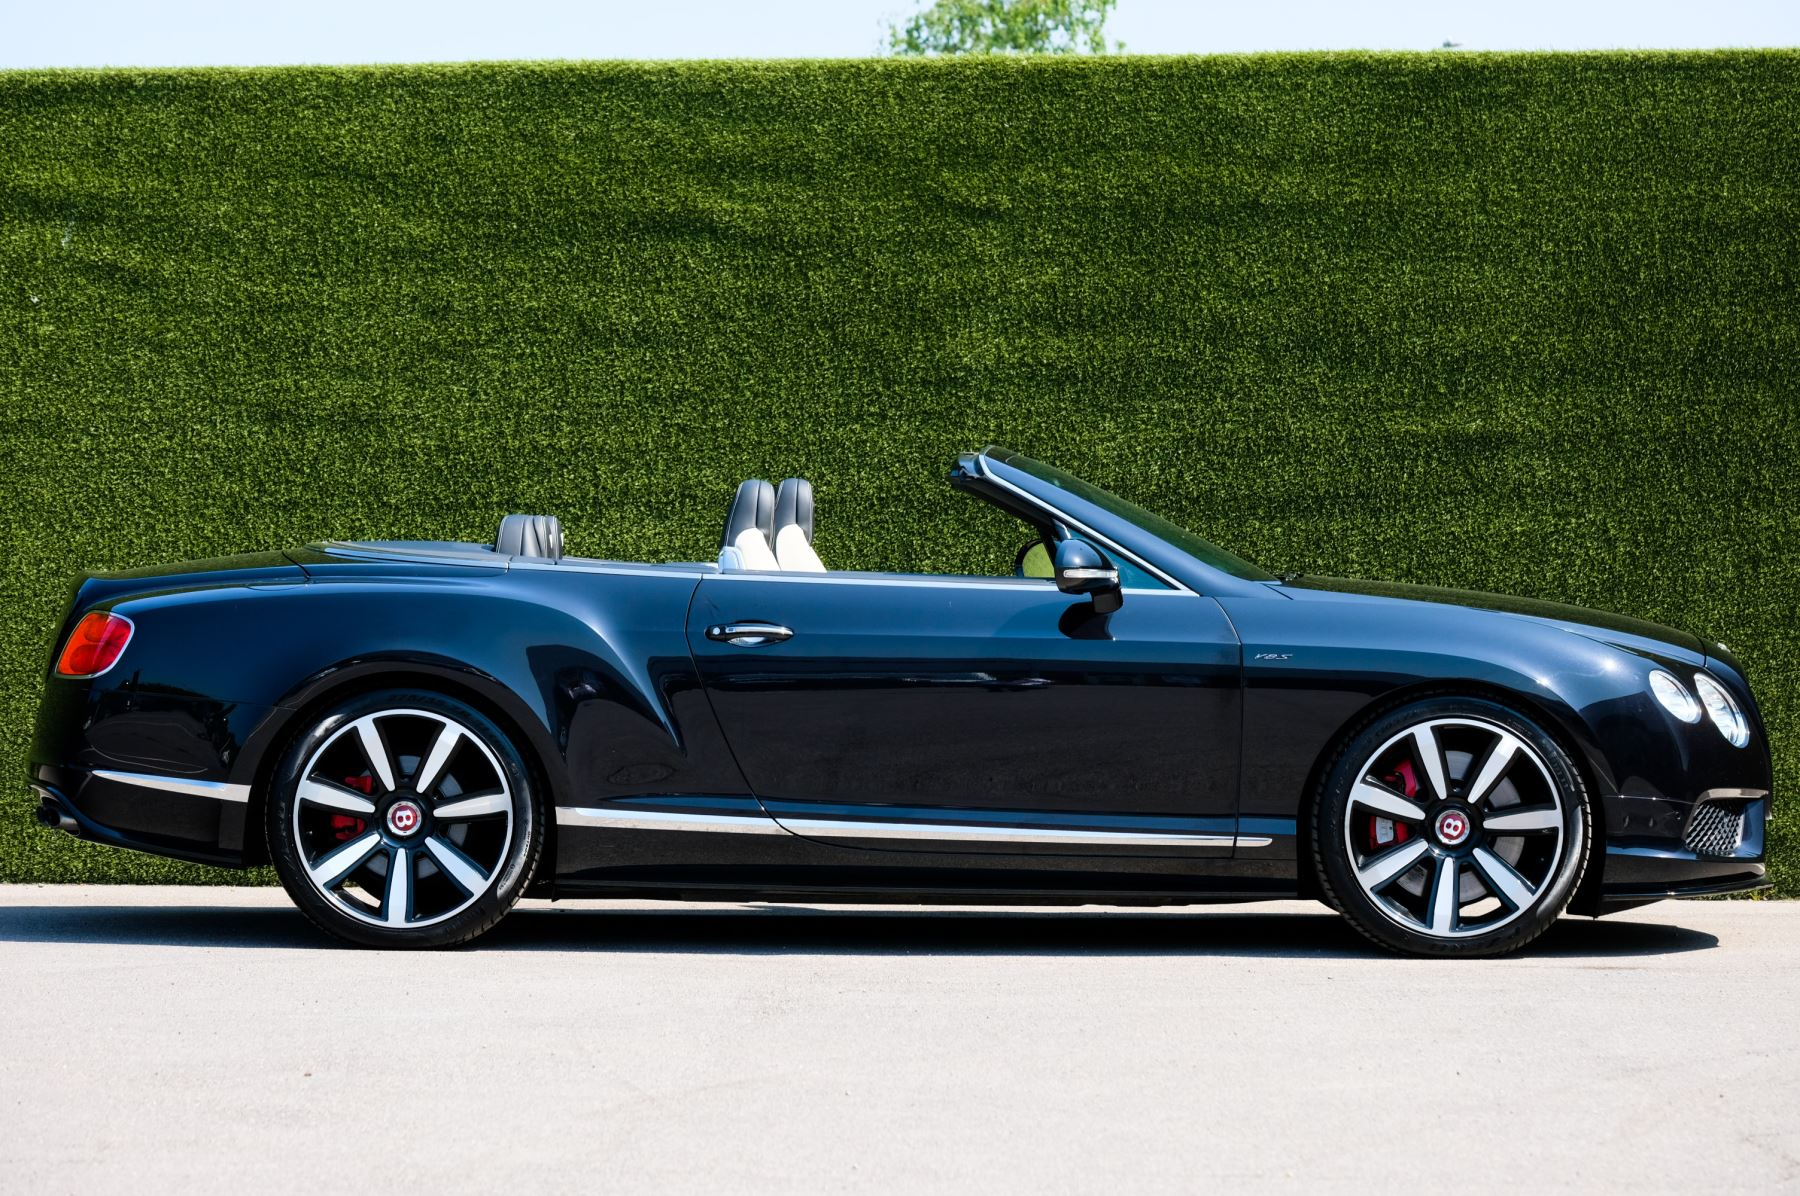 Bentley Continental GTC 4.0 V8 S - Mulliner Driving Specification image 3